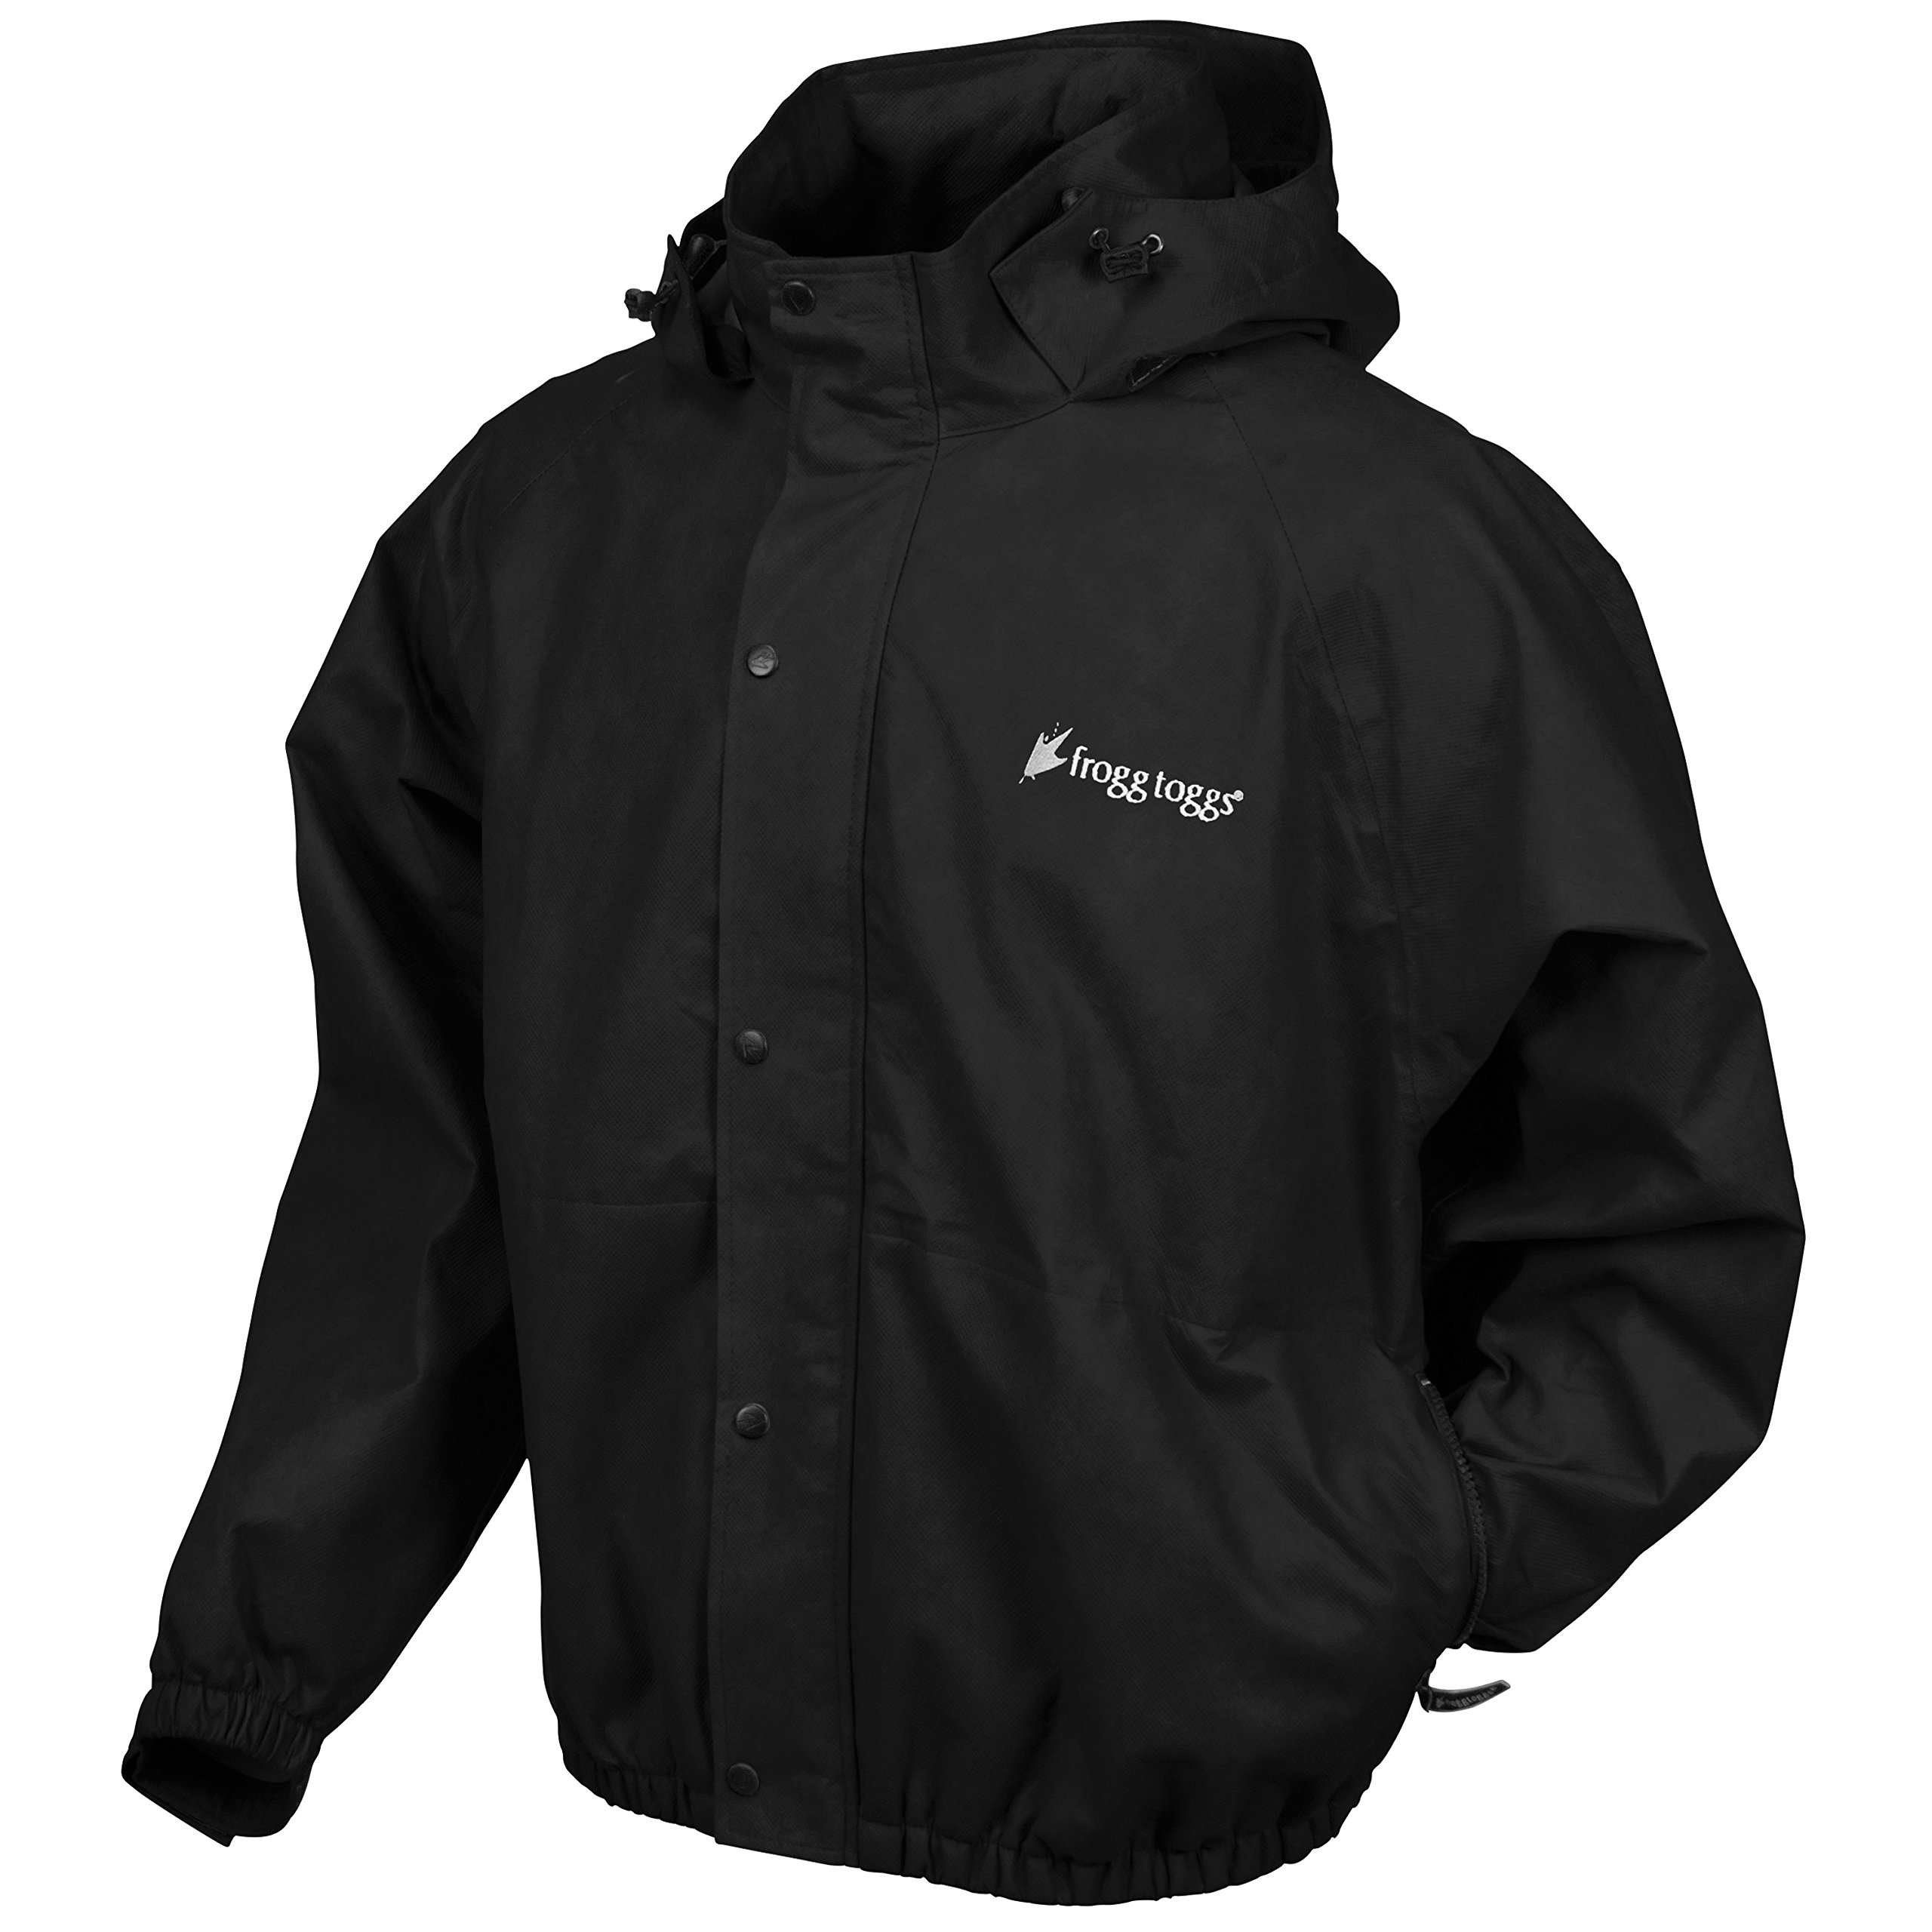 Frogg Toggs Men's Classic Pro Action Jacket with Pockets, Black, X-Large by Frogg Toggs